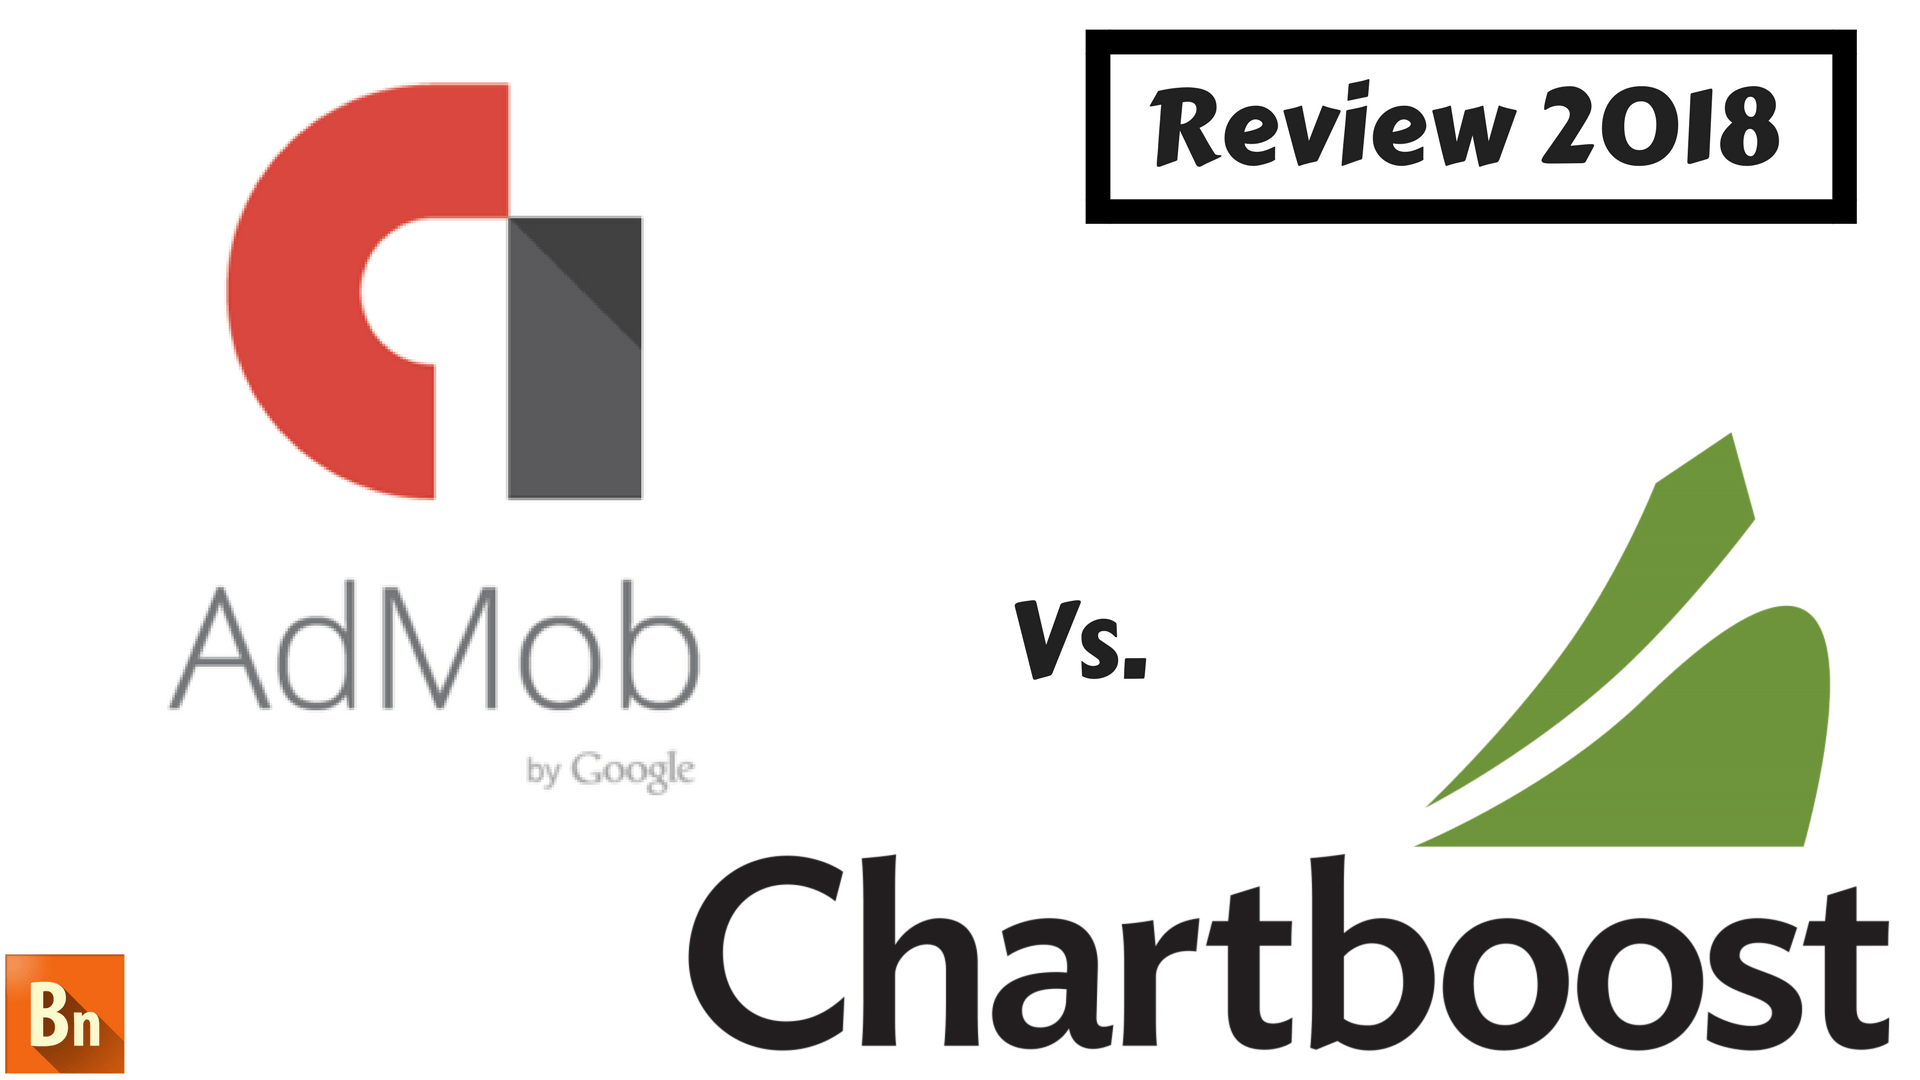 Chartboost vs Admob- Review 2018